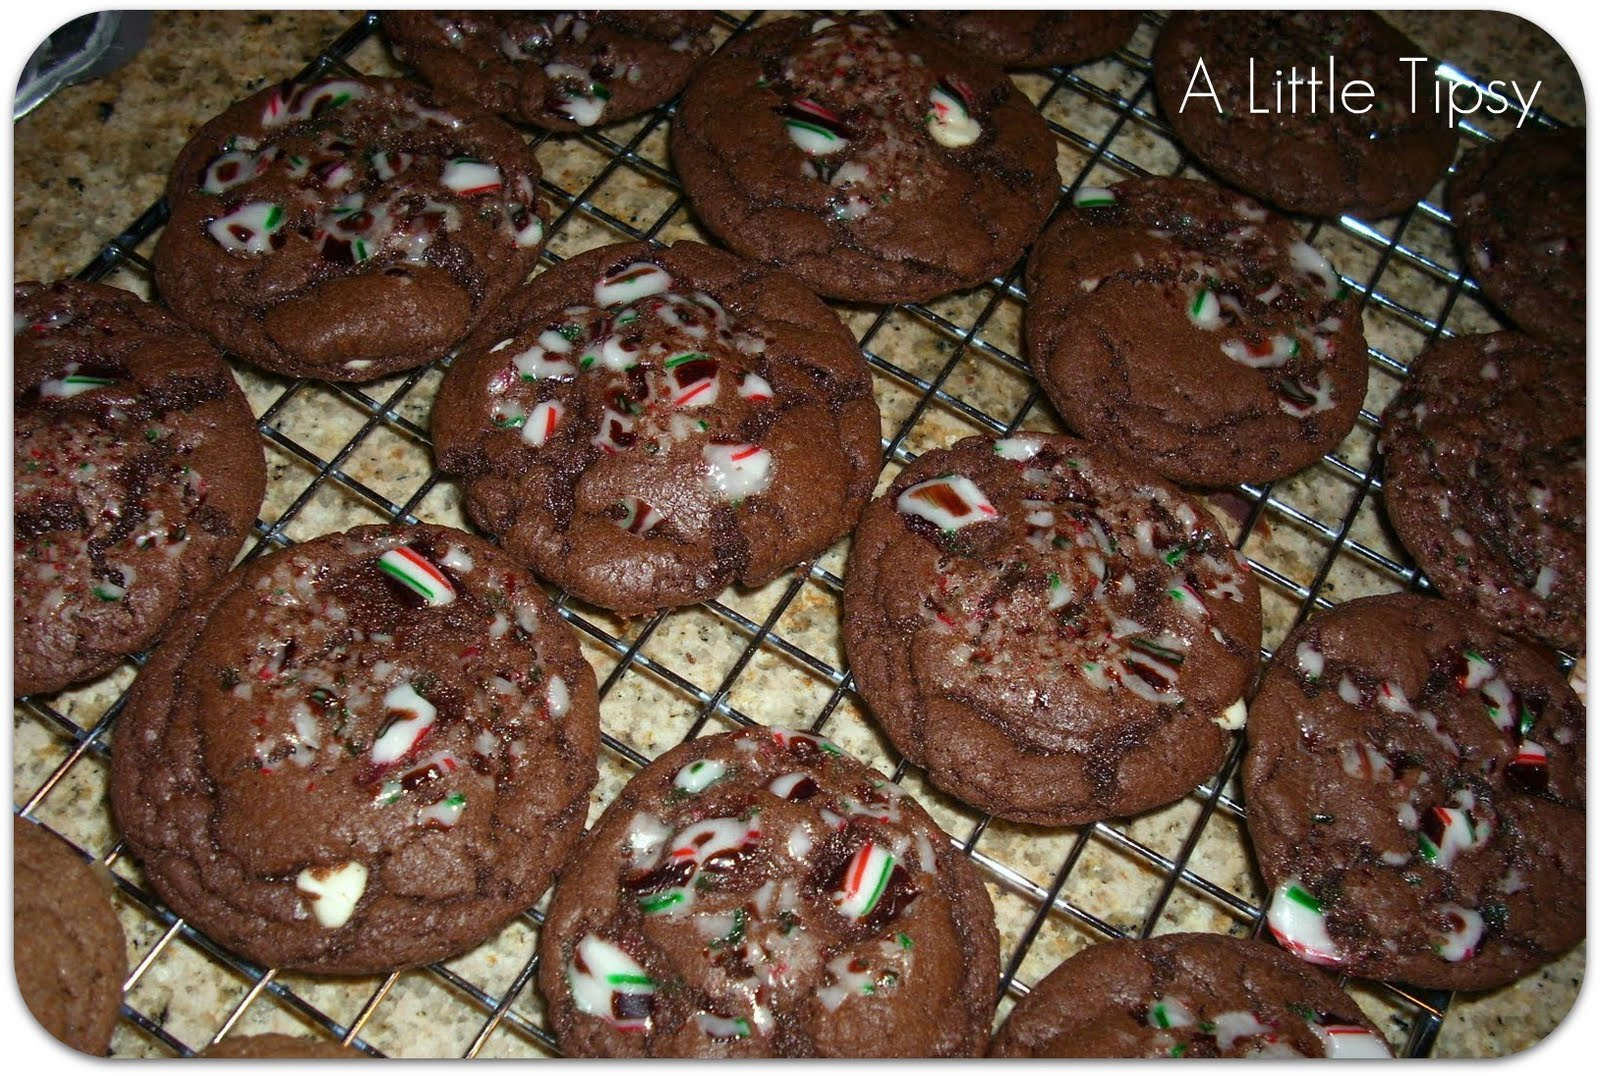 Chocolate Candy Cane Crunch Cookies With A Little Tipsy Honeybear Lane